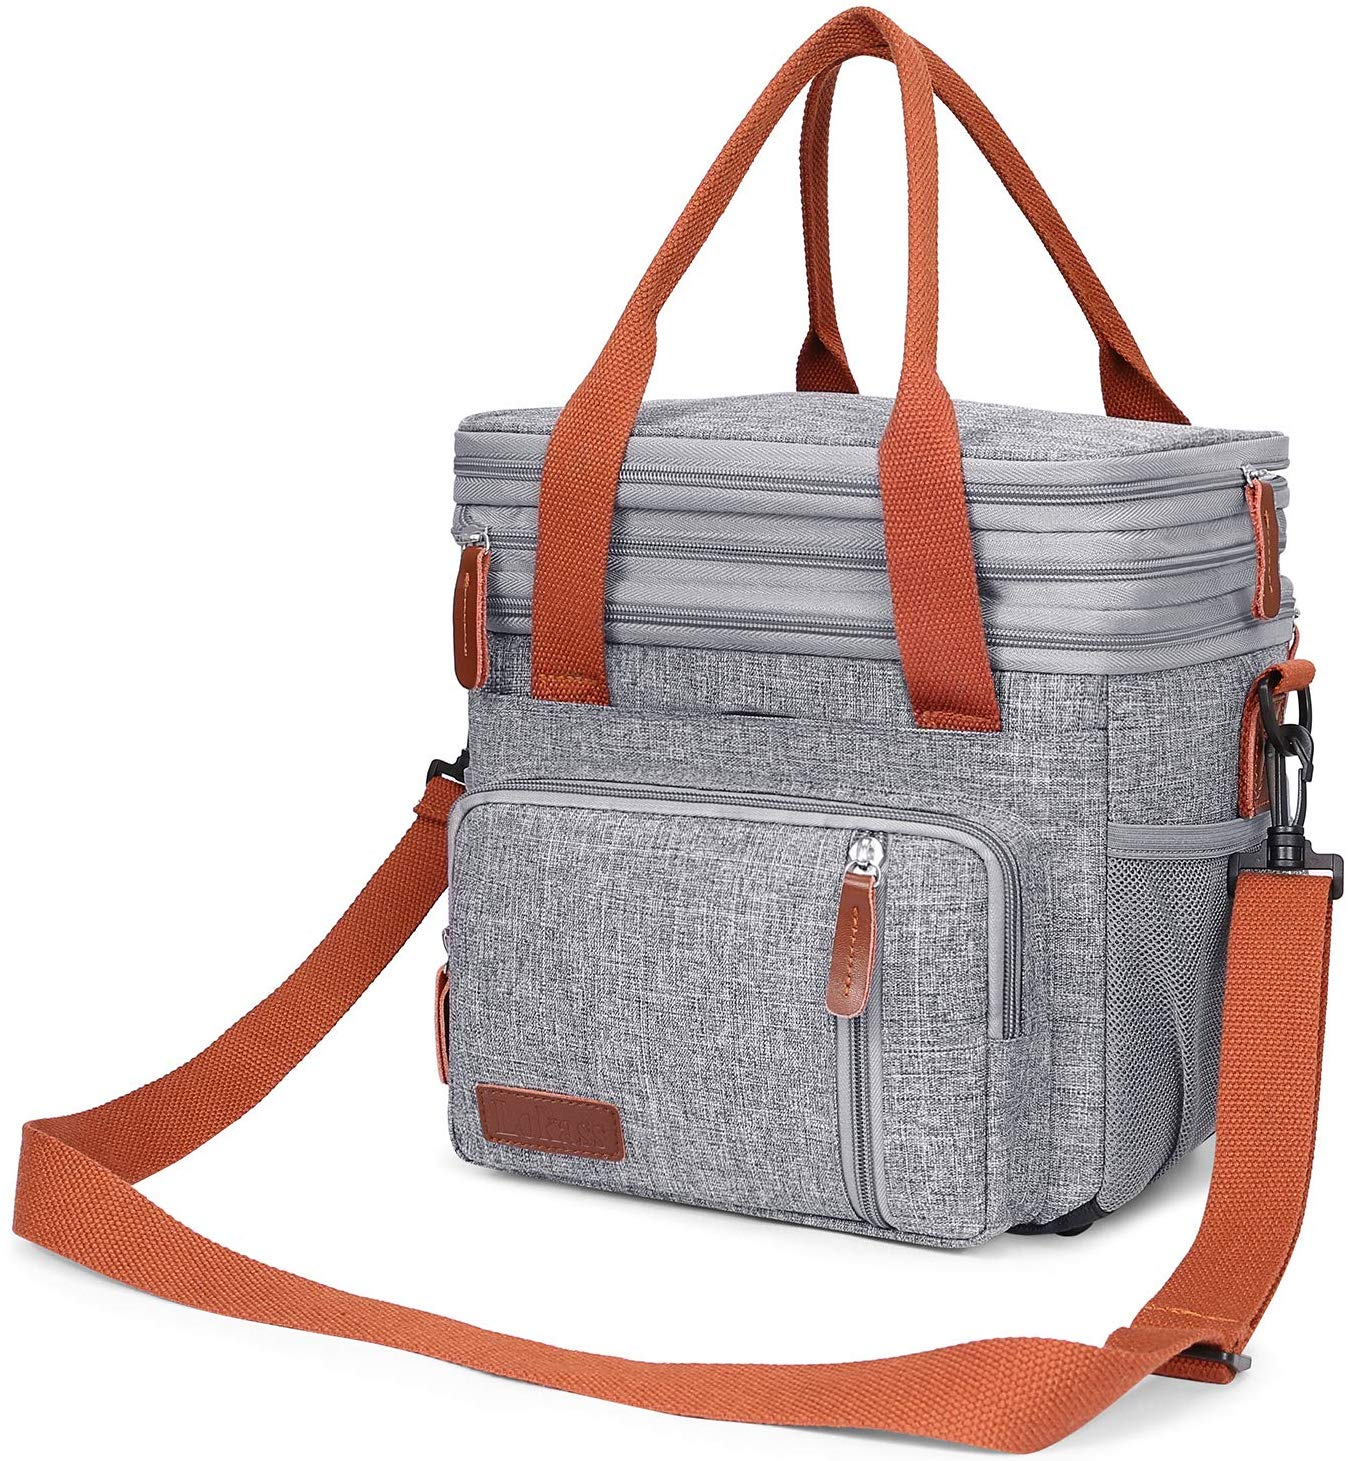 UtoteBag Insulated Lunch Bag With Shoulder Strap Video Review